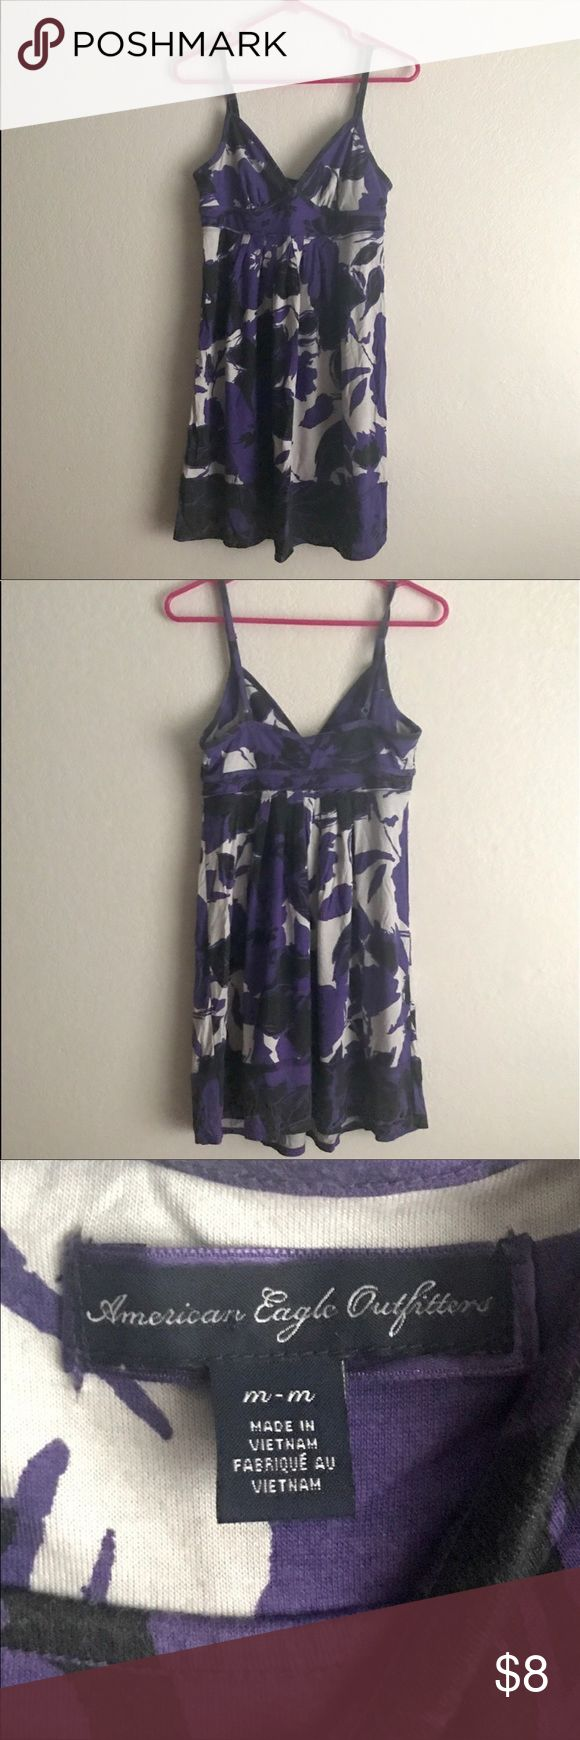 """American Eagle Outfitters Sun Dress Gently used. Great condition. About 35"""" in length. Perfect for showing of a little """"cleave""""... and a little leg. ***NEW TO POSHMARK: sign up using code TALLGIRLSCLOSET to get $5 off your first order. 🙂 American Eagle Outfitters Dresses"""